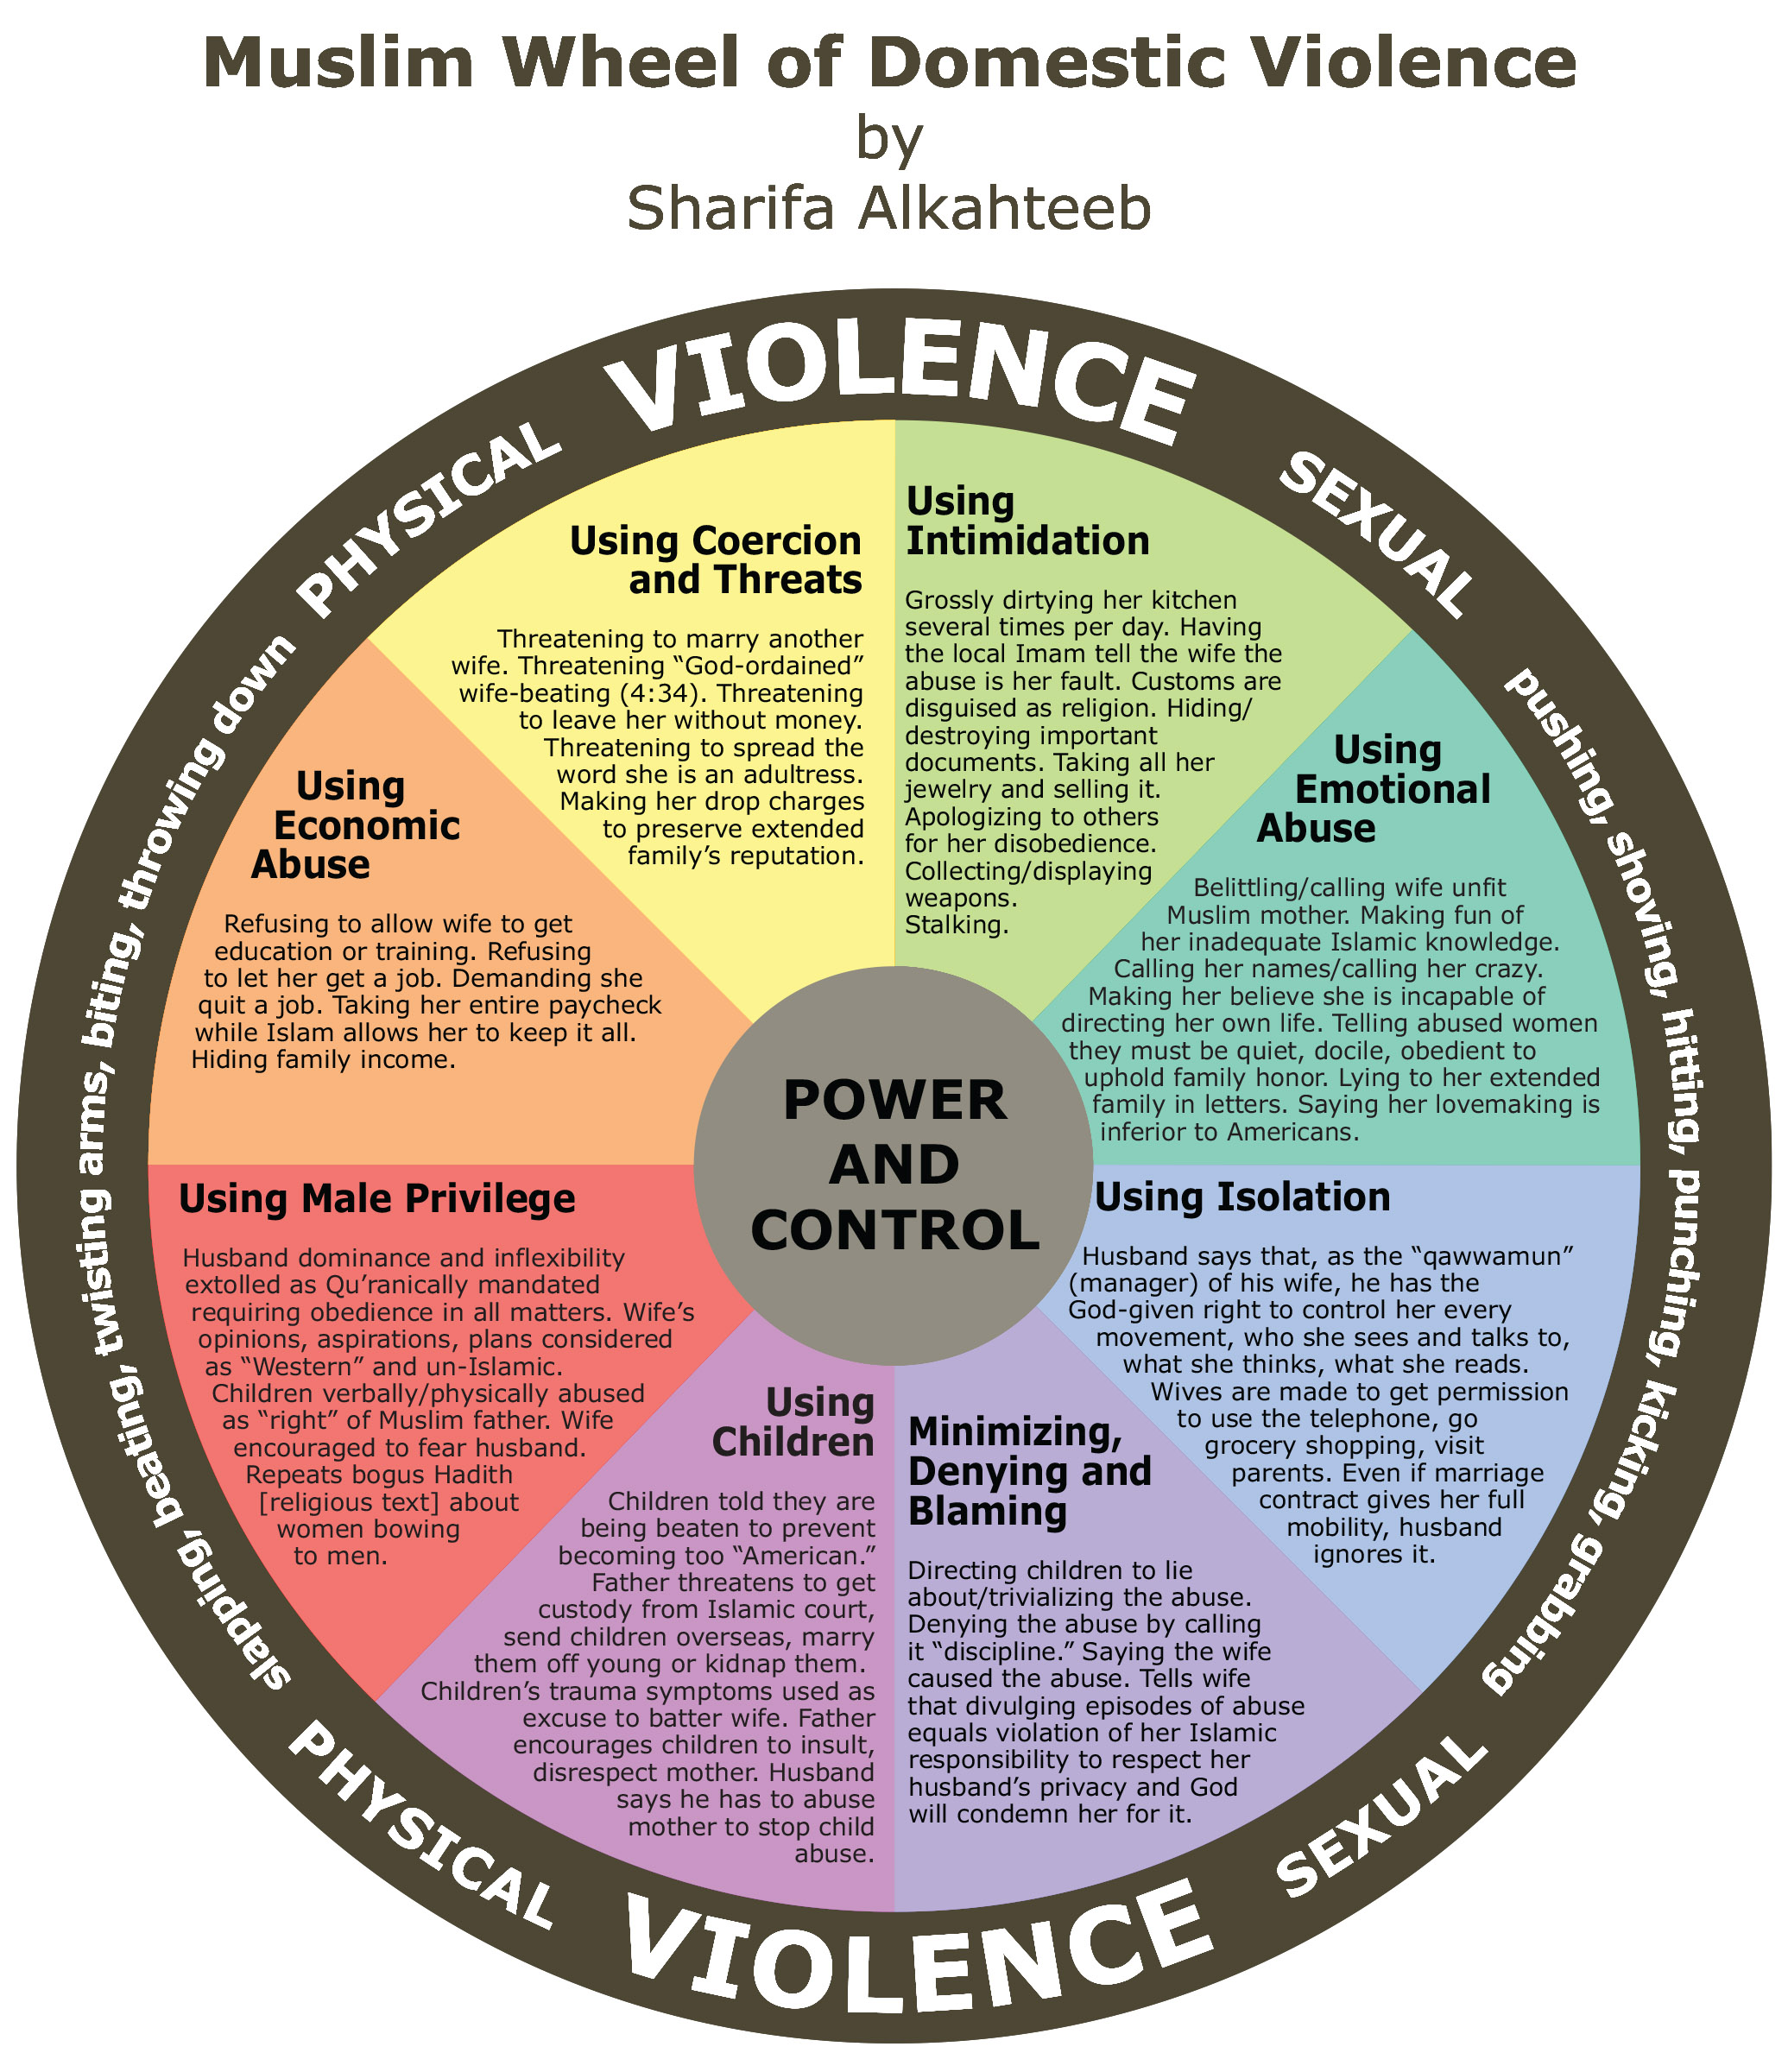 Muslim Wheel of Domestic Violence by Sharifa Alkahteeb